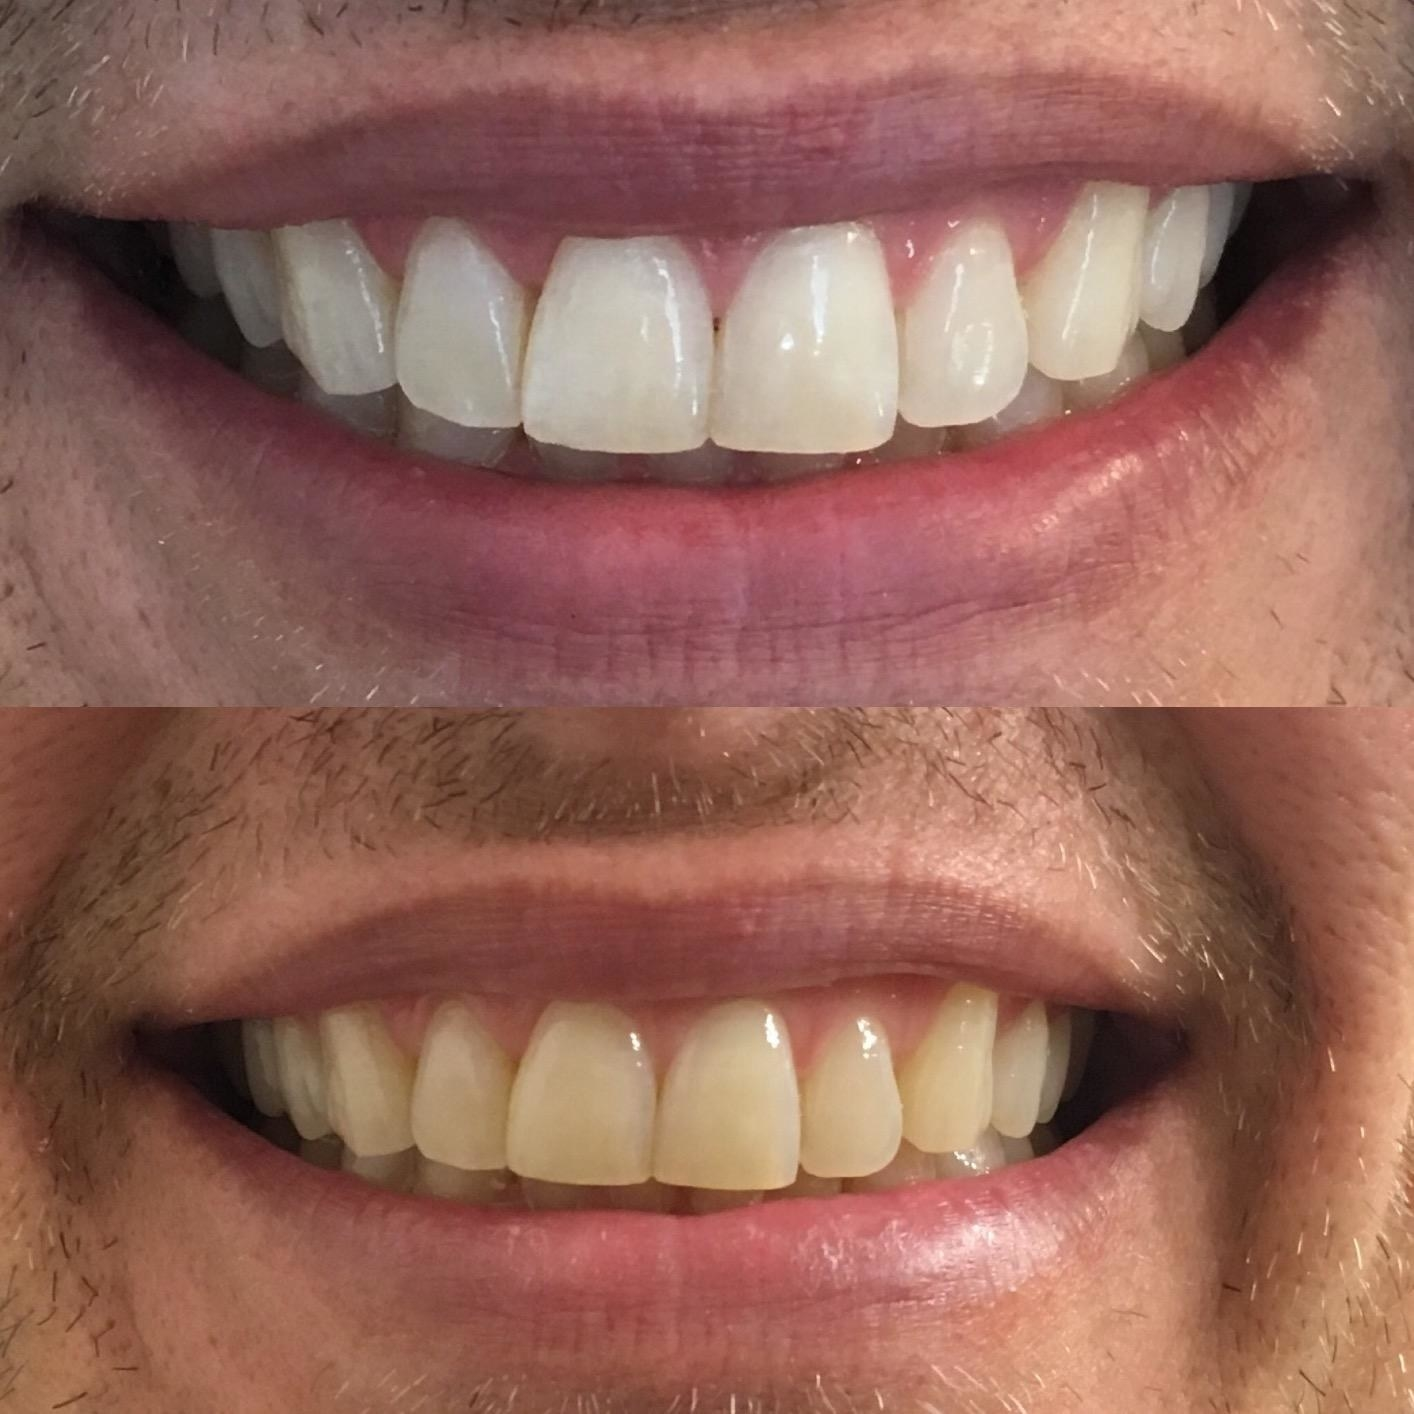 before: yellow teeth after: teeth that are about three shades lighter